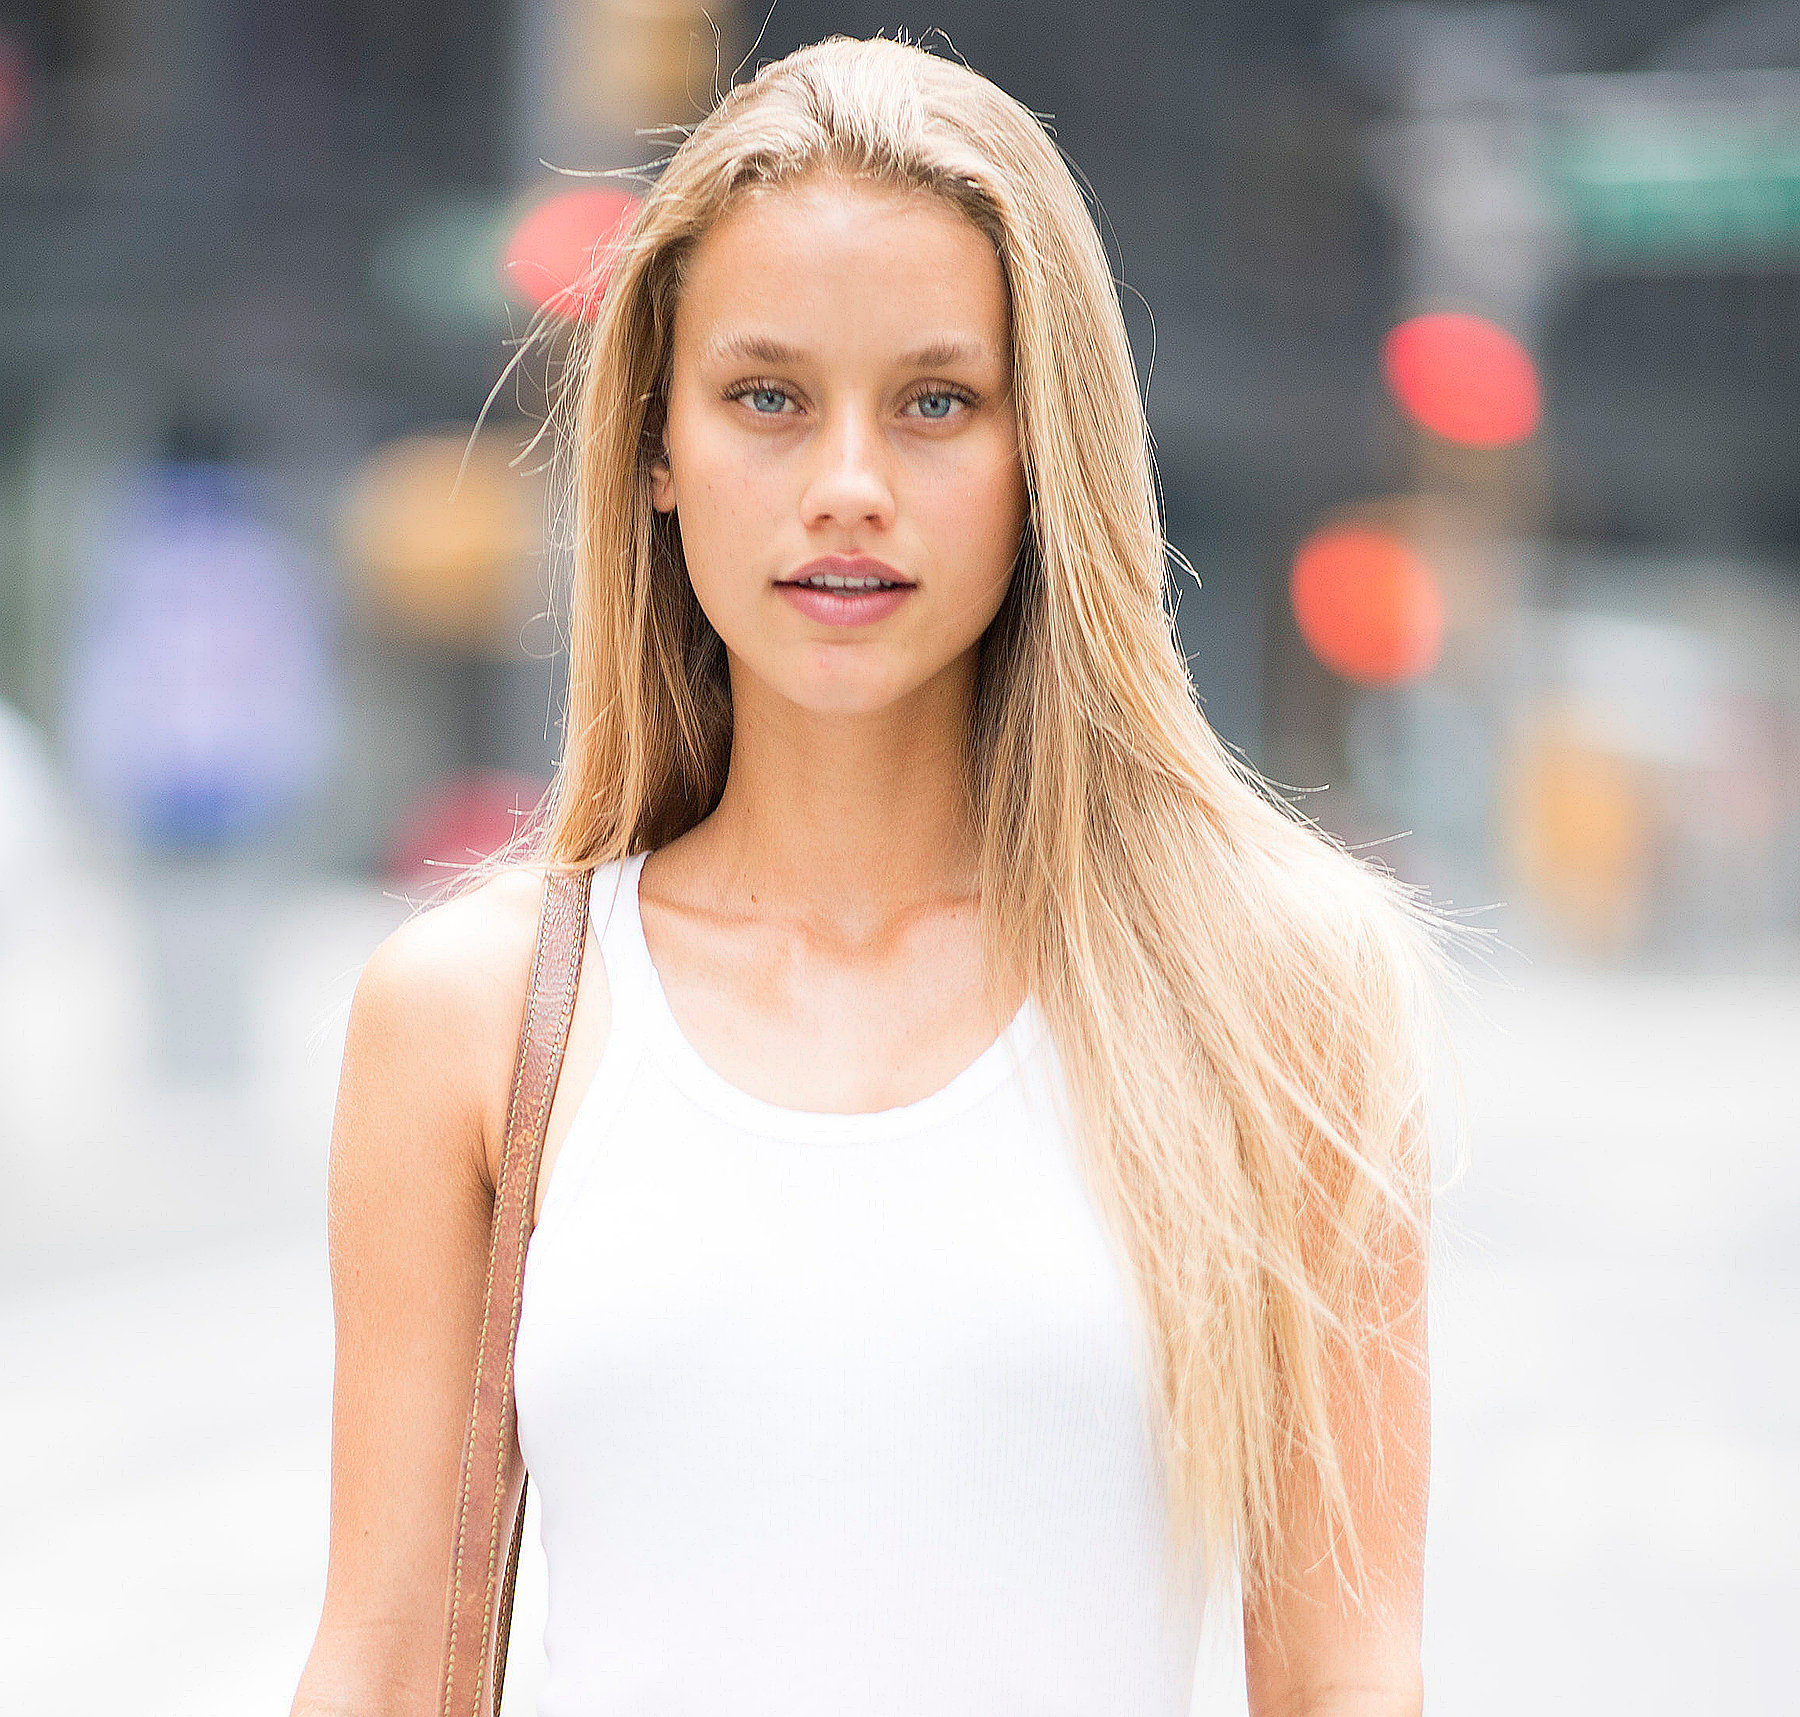 Chase-Carter - The 21-year-old Sports Illustrated Swimsuit model is getting into an empire state of mind! She'll be running her first marathon, also with the NYRR Team for Kids.